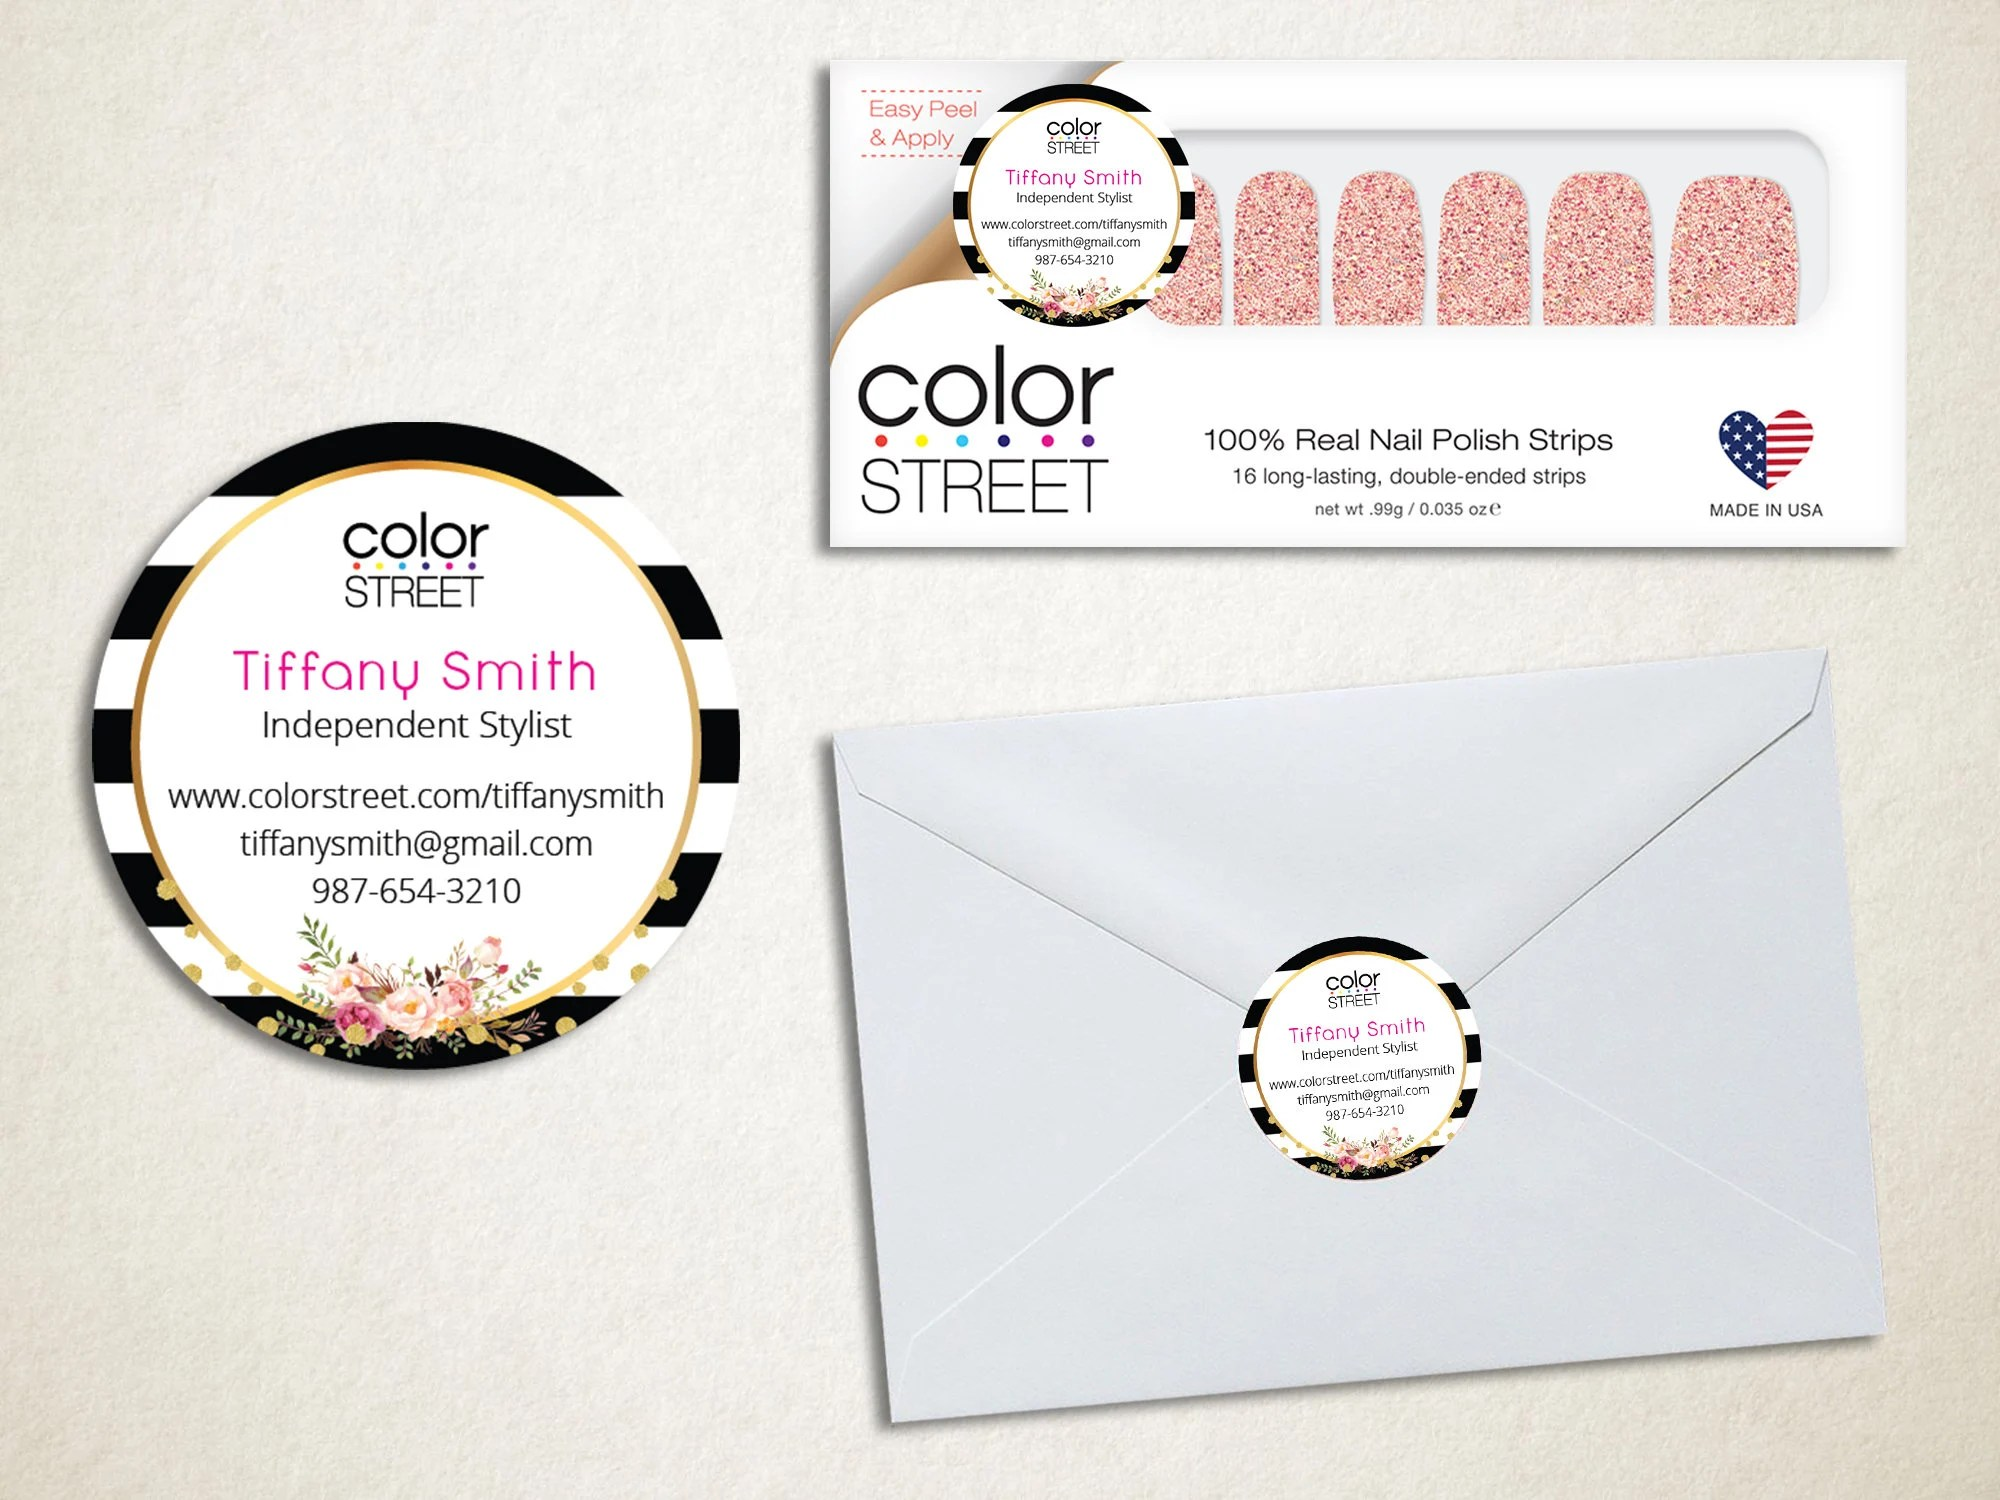 Printable Color Street Stickers Color Street Envelope Seals Color Street Nail Mail Stickers Color Street Business Cards Cs12